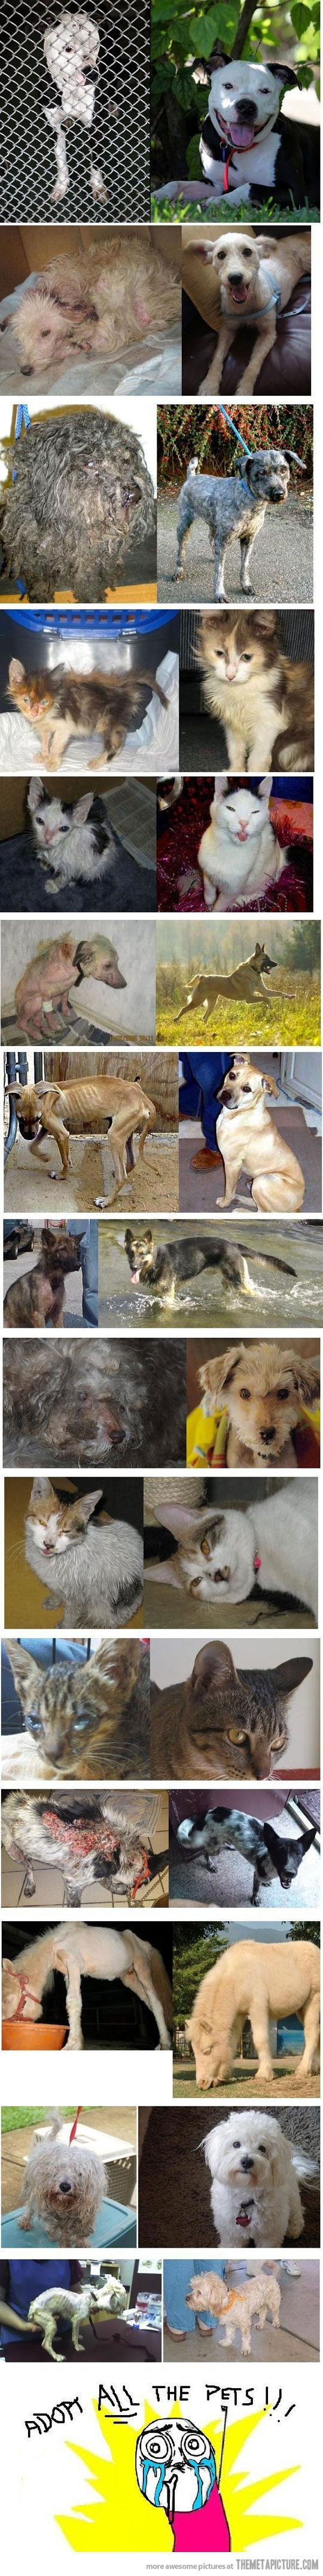 Rescued animals, before and after shots. Please give shelter animals the forever home they deserve.